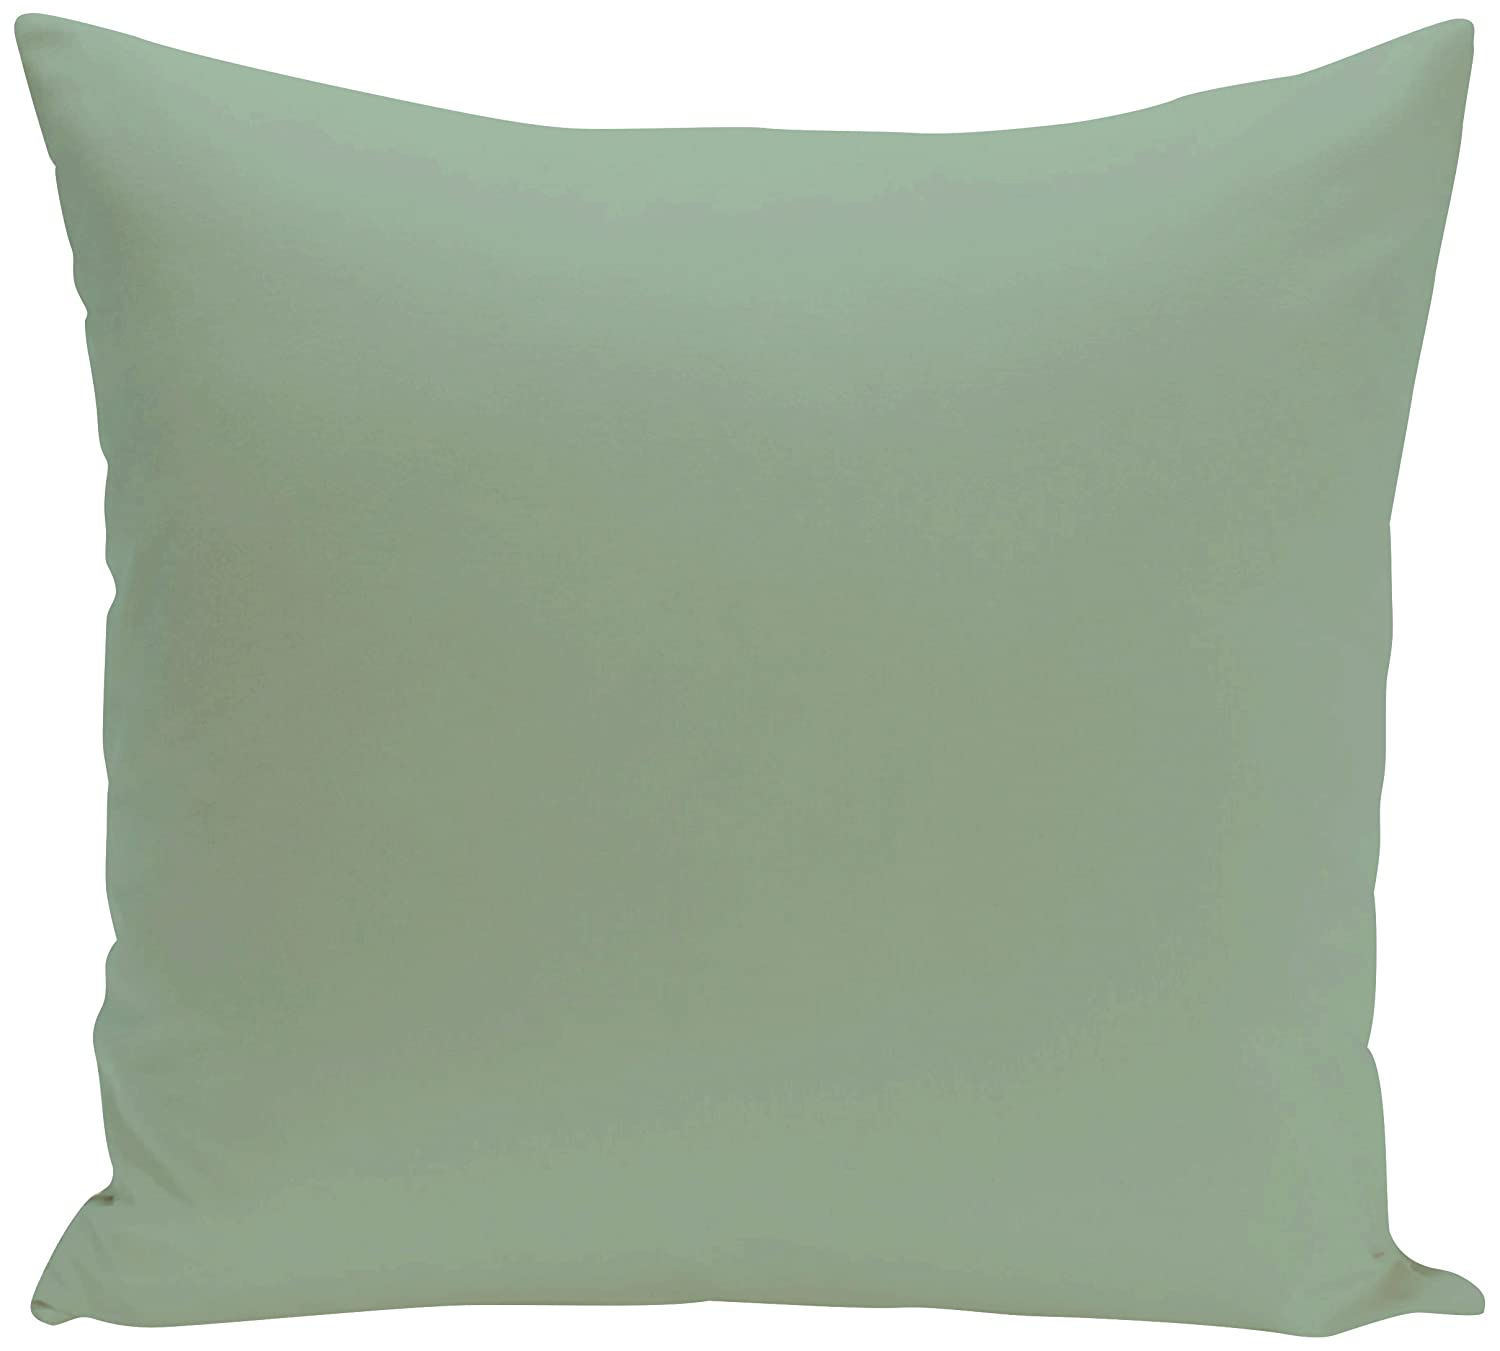 E by design PSOGR15-18 18 x 18-inch Solid Print Pillow Green 18x18,